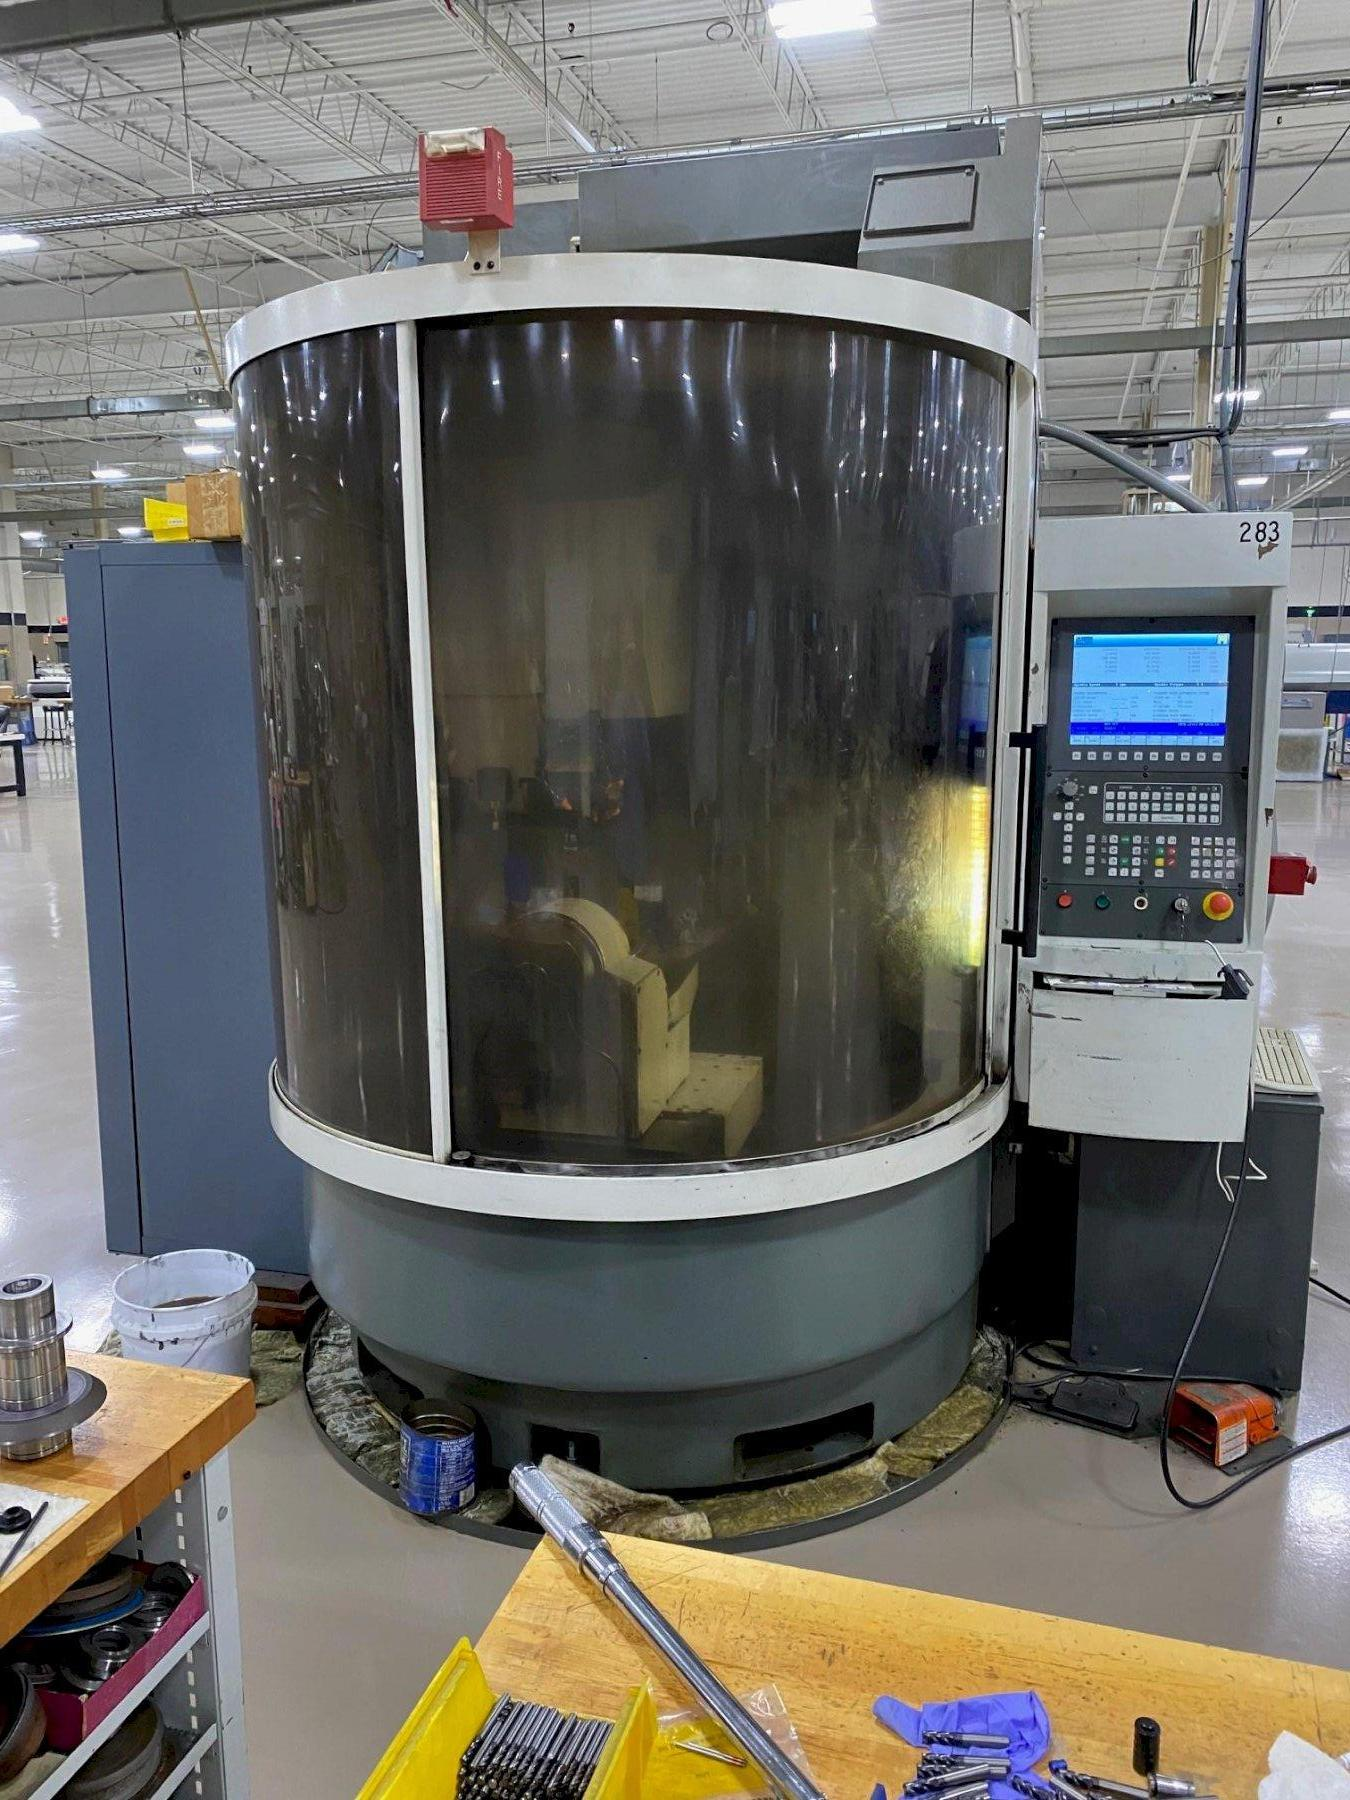 1999 WALTER GRINDERS HELITRONIC PRODUCTION 6 AXIS CNC TOOL & CUTTER GRINDERS